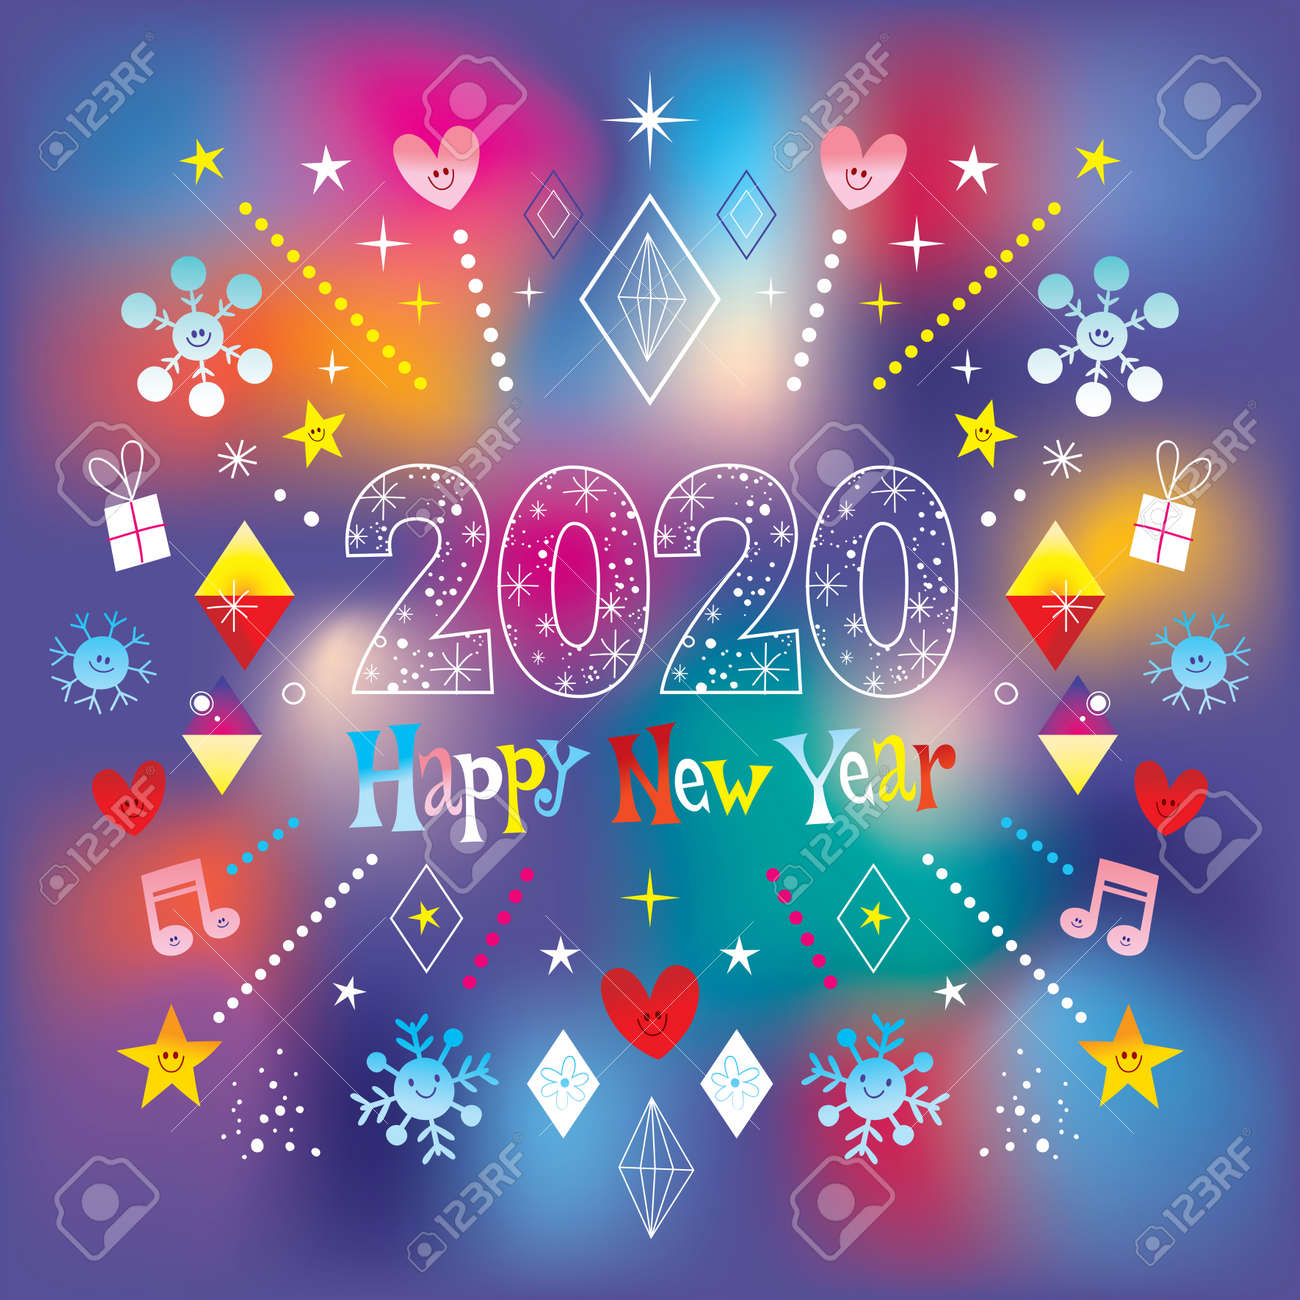 Happy New Year 2020 greeting card - 118424454